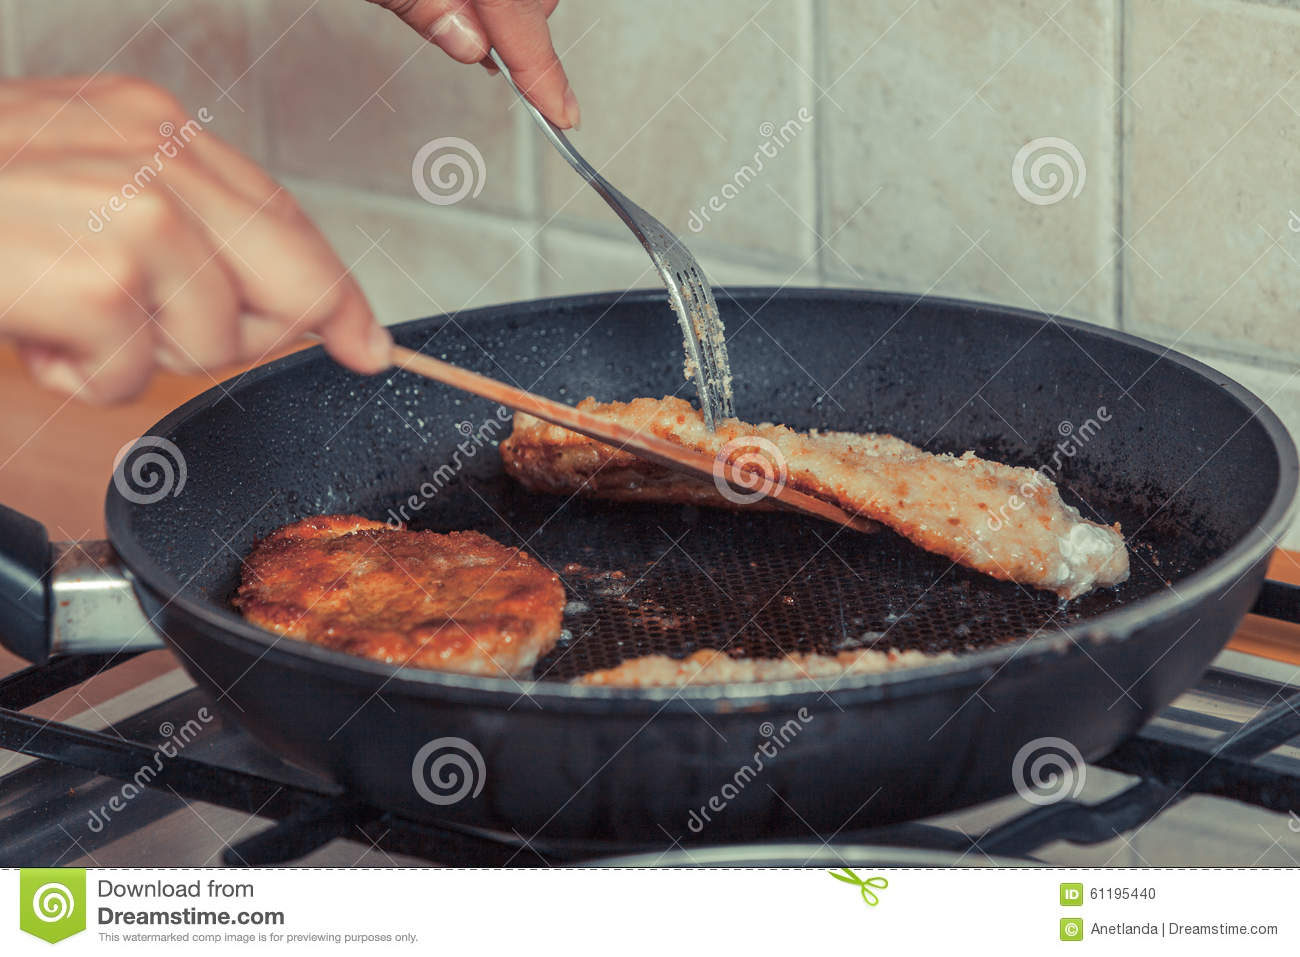 Human Frying Breaded Chicken Cutlet Stock Photo Image